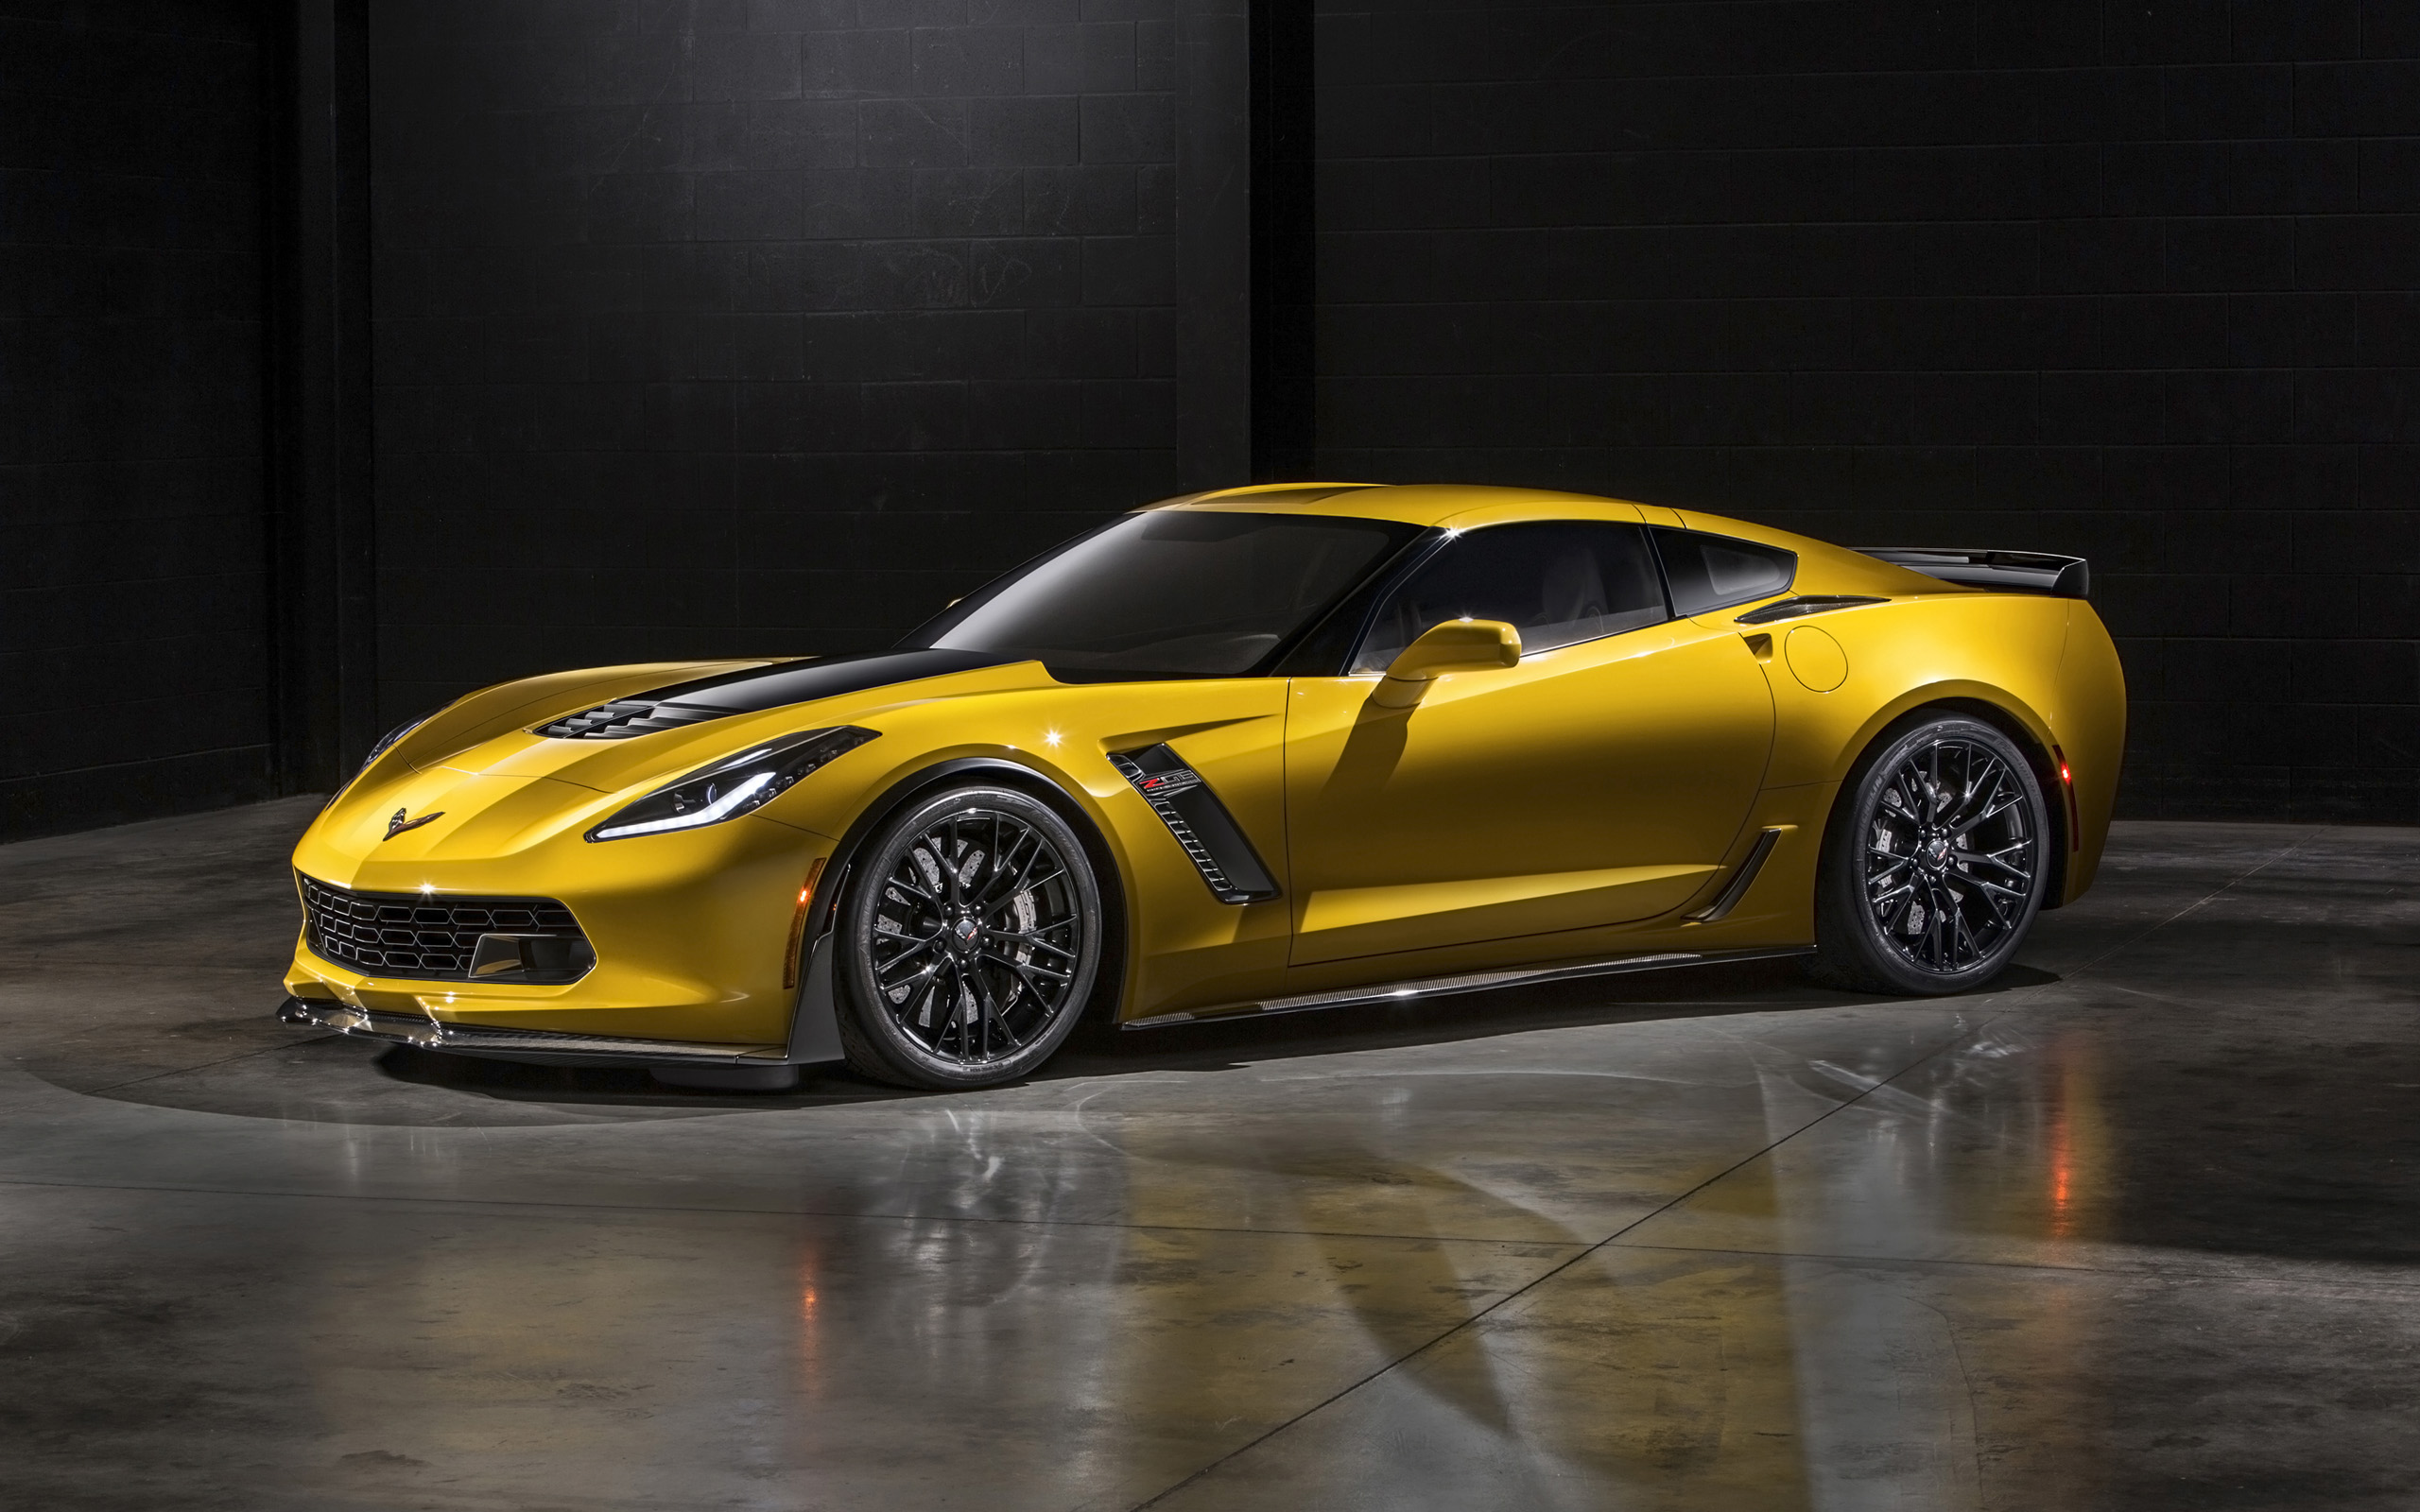 Corvette Stingray Z06 C 7 supercar muscle gd wallpaper background 2560x1600